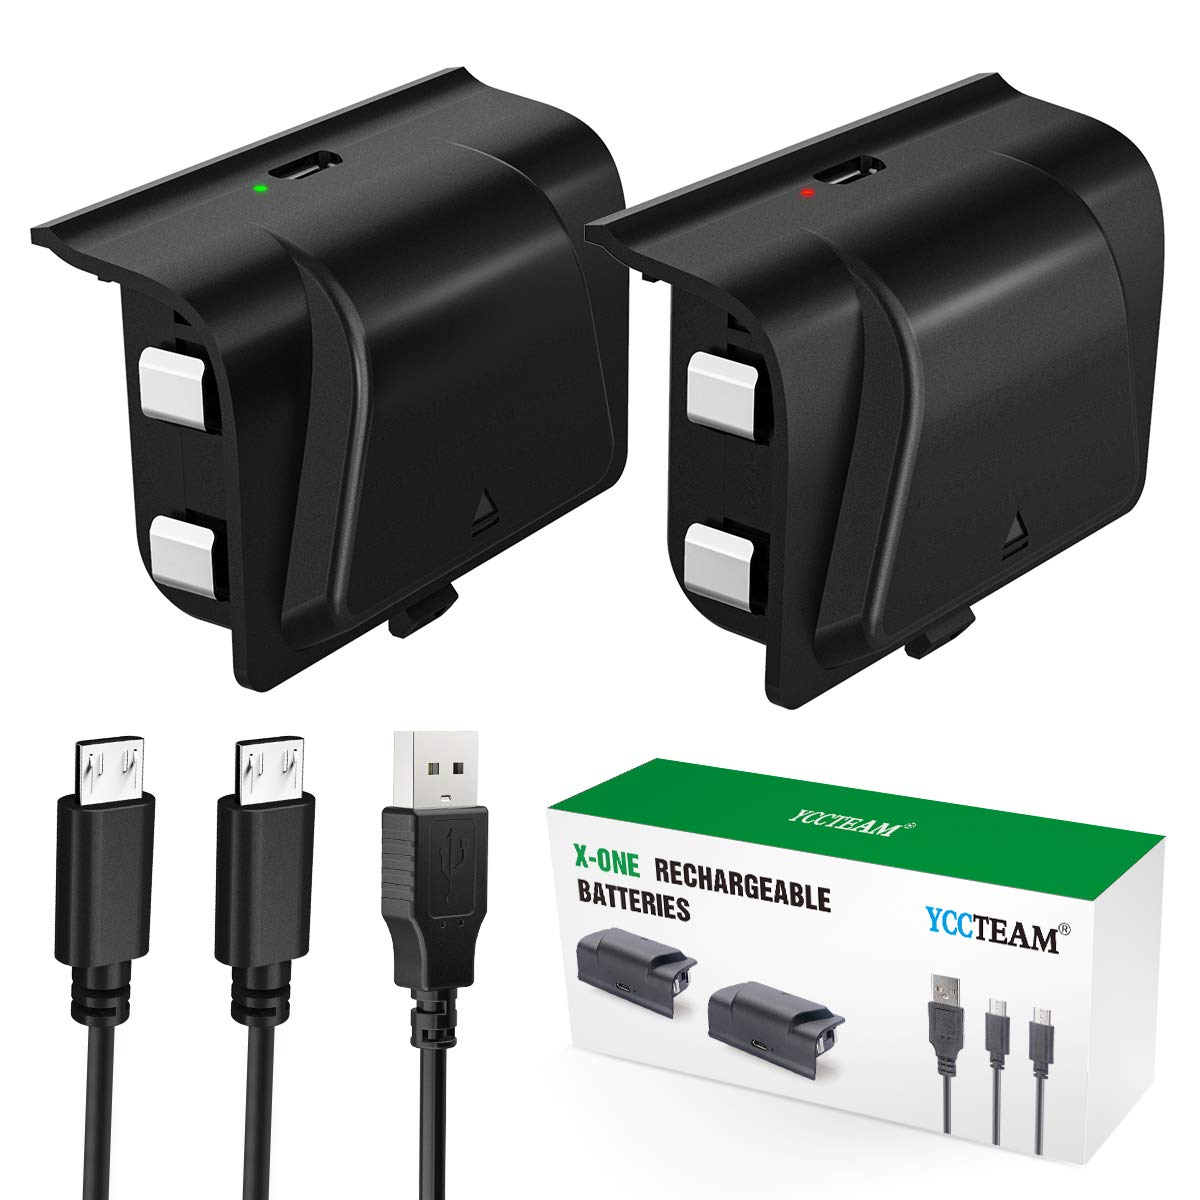 Battery Pack for Xbox One Controller, YCCTEAM 1200mAh Rechargeable Battery [2-Pack] for Xbox One/X/S/Xbox One Elite Wireless Controller with 5FT Micro USB Charging Cable and LED Charging Indicator